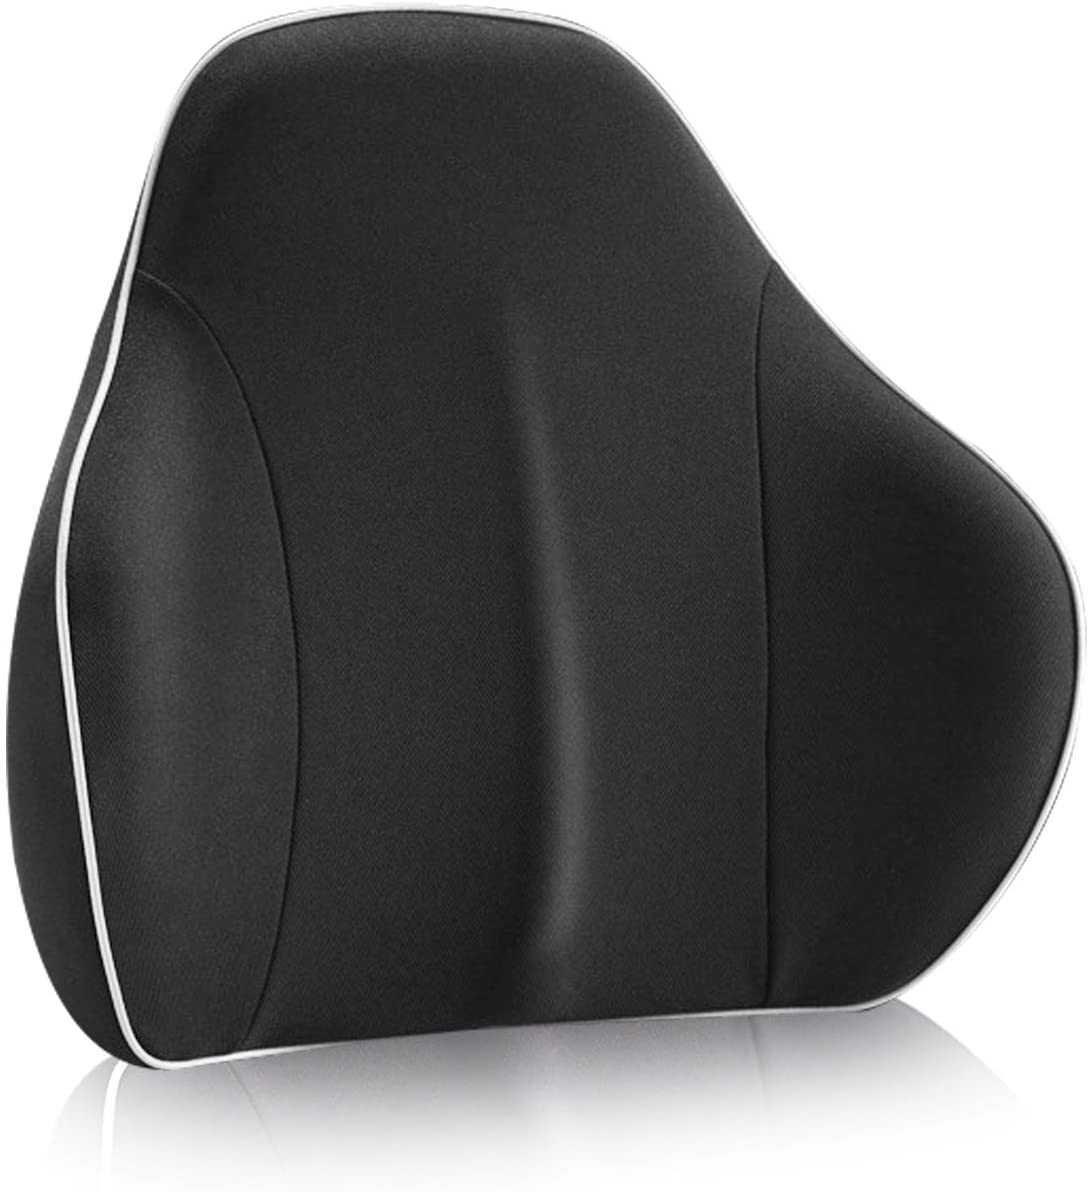 RaoRanDang Lumbar Support Pillow, Advanced Back Pillow with Innovative 3D Polymer, Breathable,Washable,Ergonomic Lumbar Support Cushion for Lower Back Pain Relief- Ideal for Car Office Chair